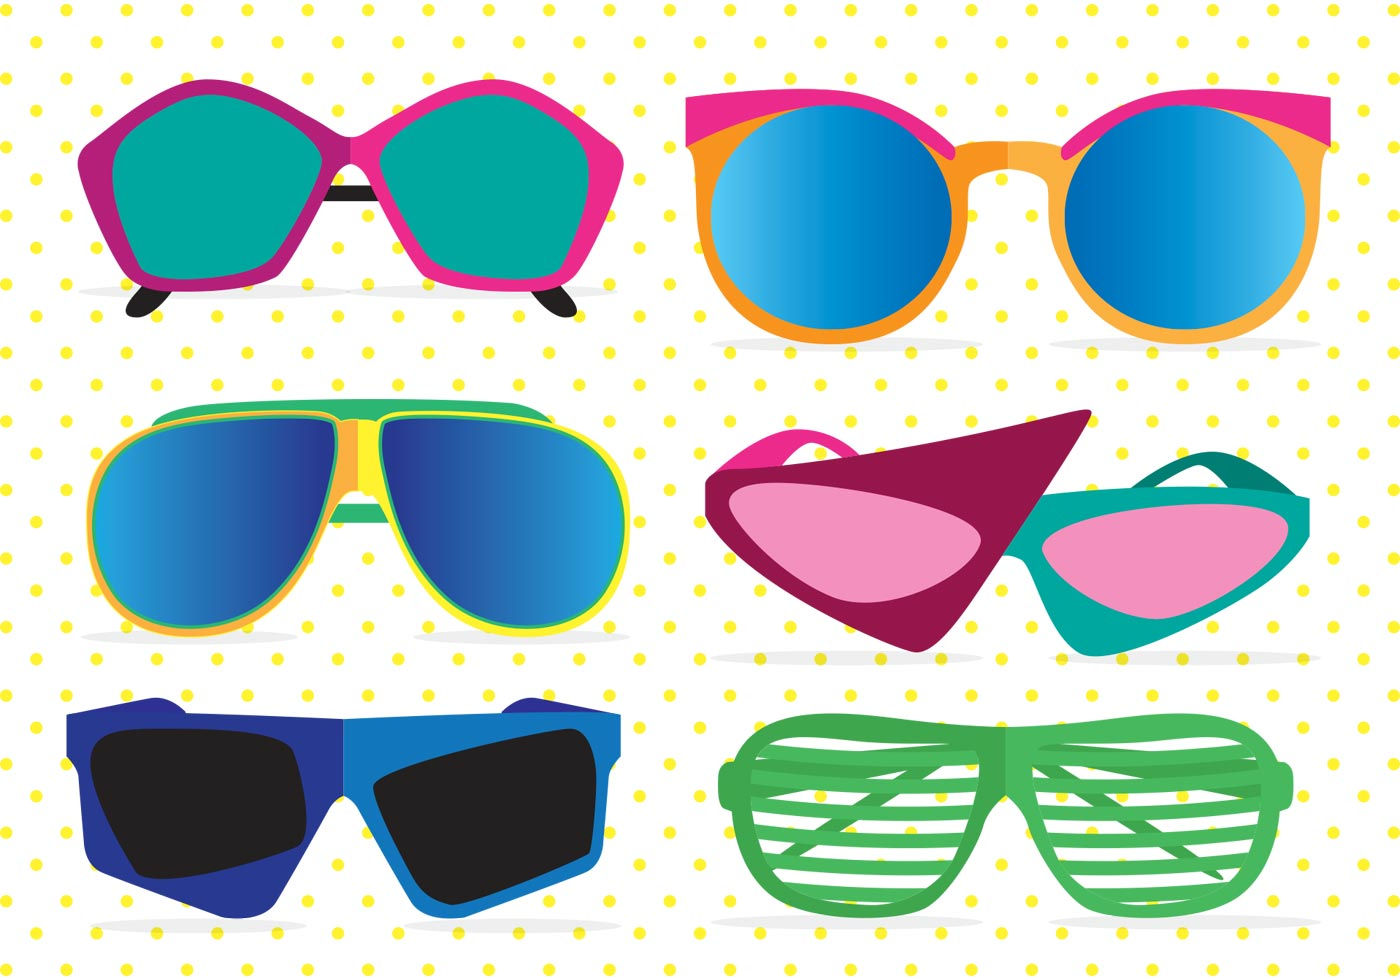 80 s sunglasses clipart graphic royalty free download 80\'S Sunglasses Cliparts - Cliparts Zone graphic royalty free download